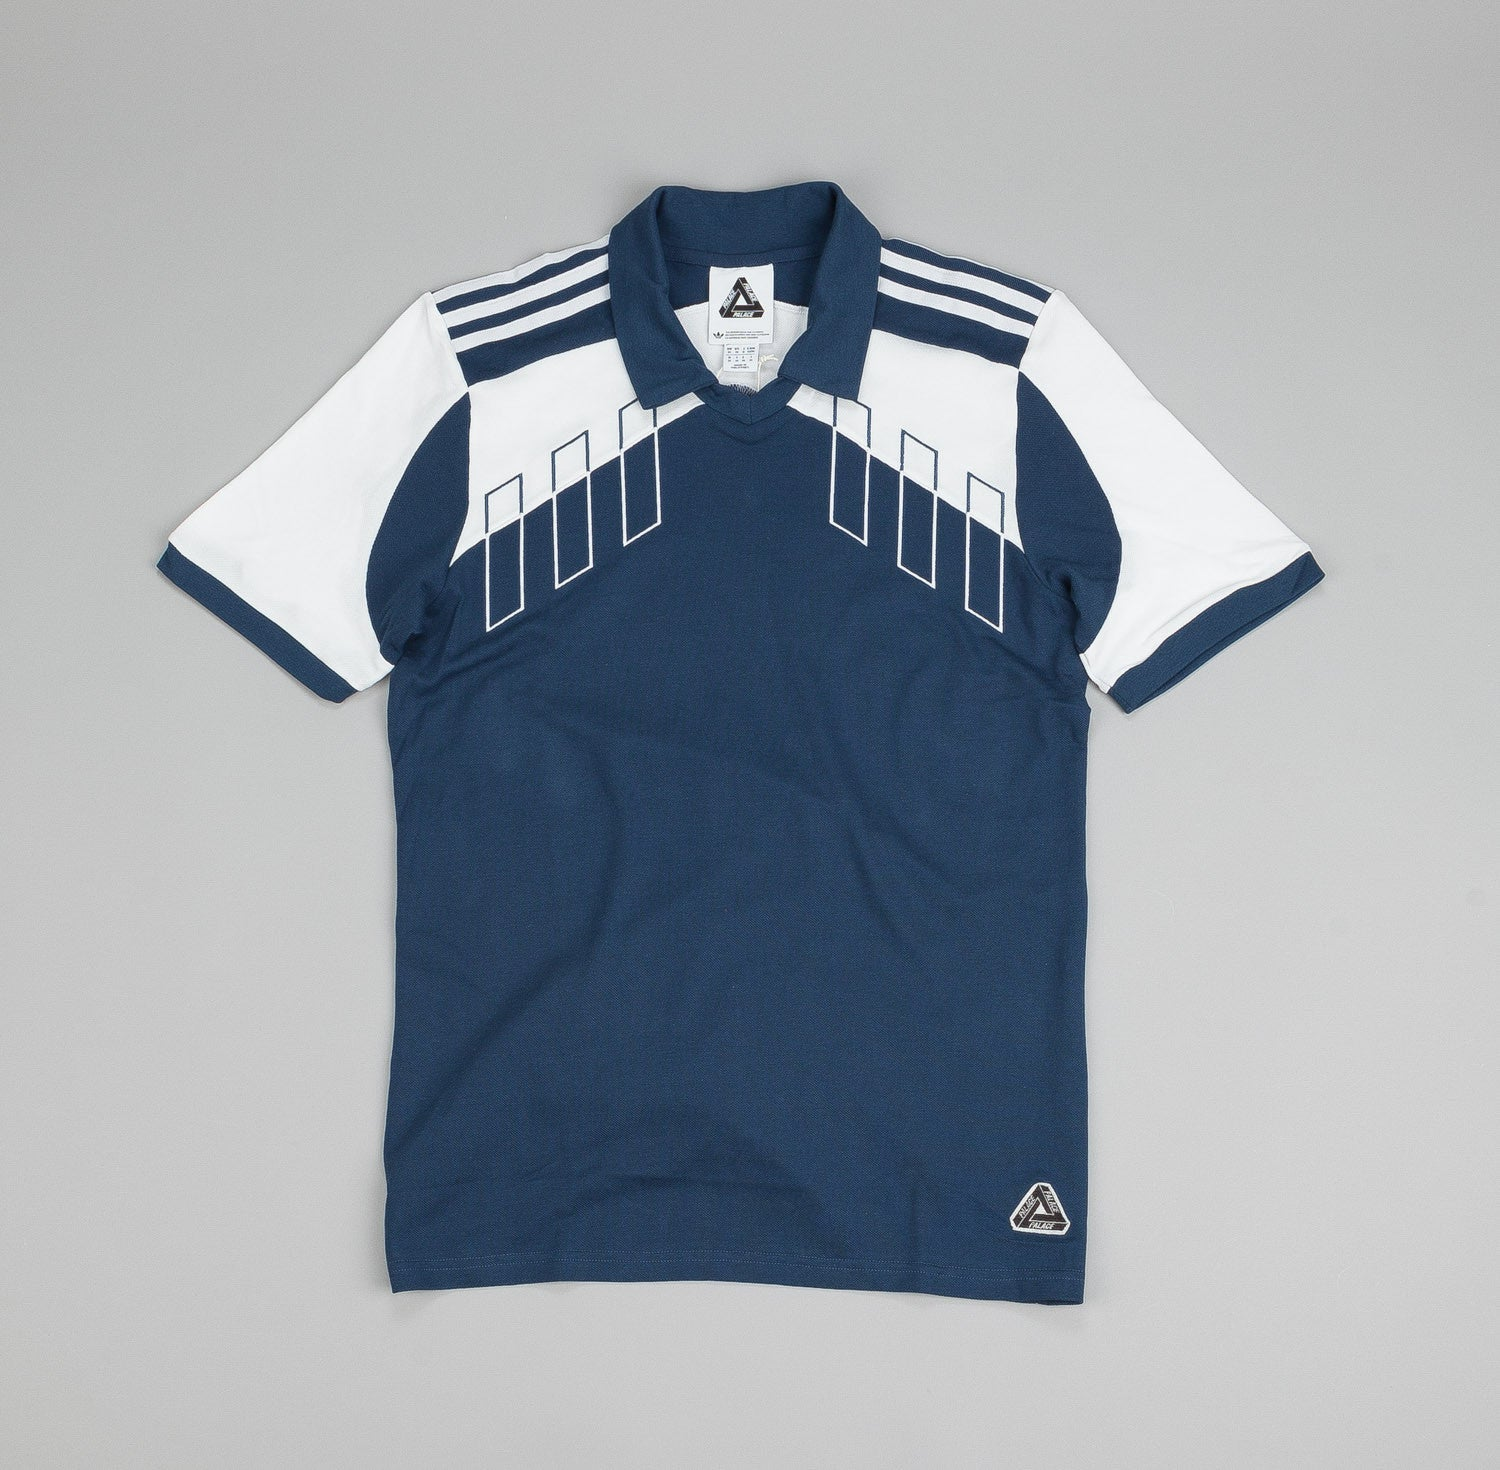 Adidas X Palace Goalie Shirt Rich Blue